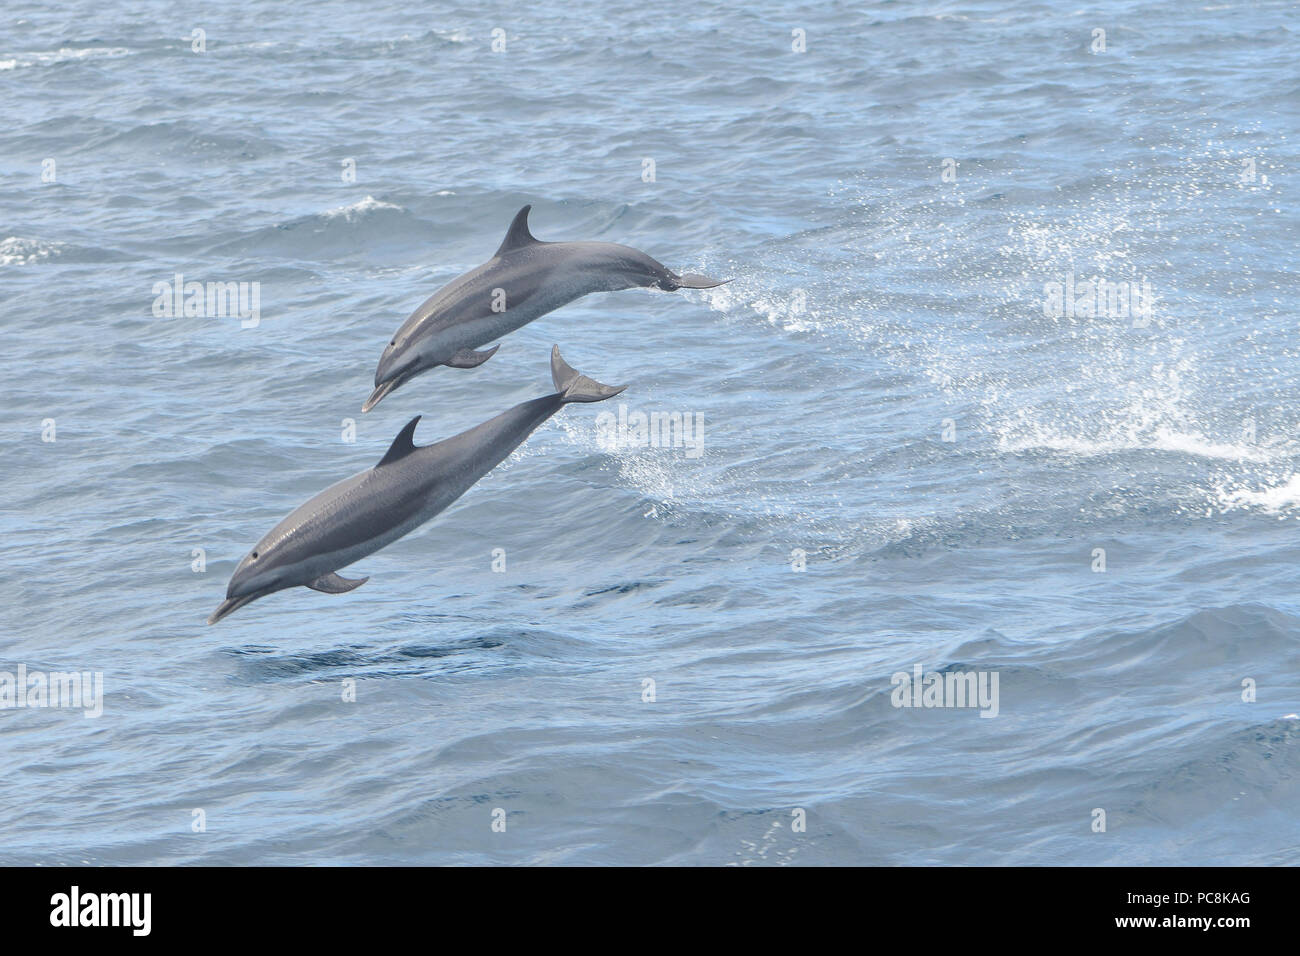 Close up of two dolphins jumping out of the water - Stock Image